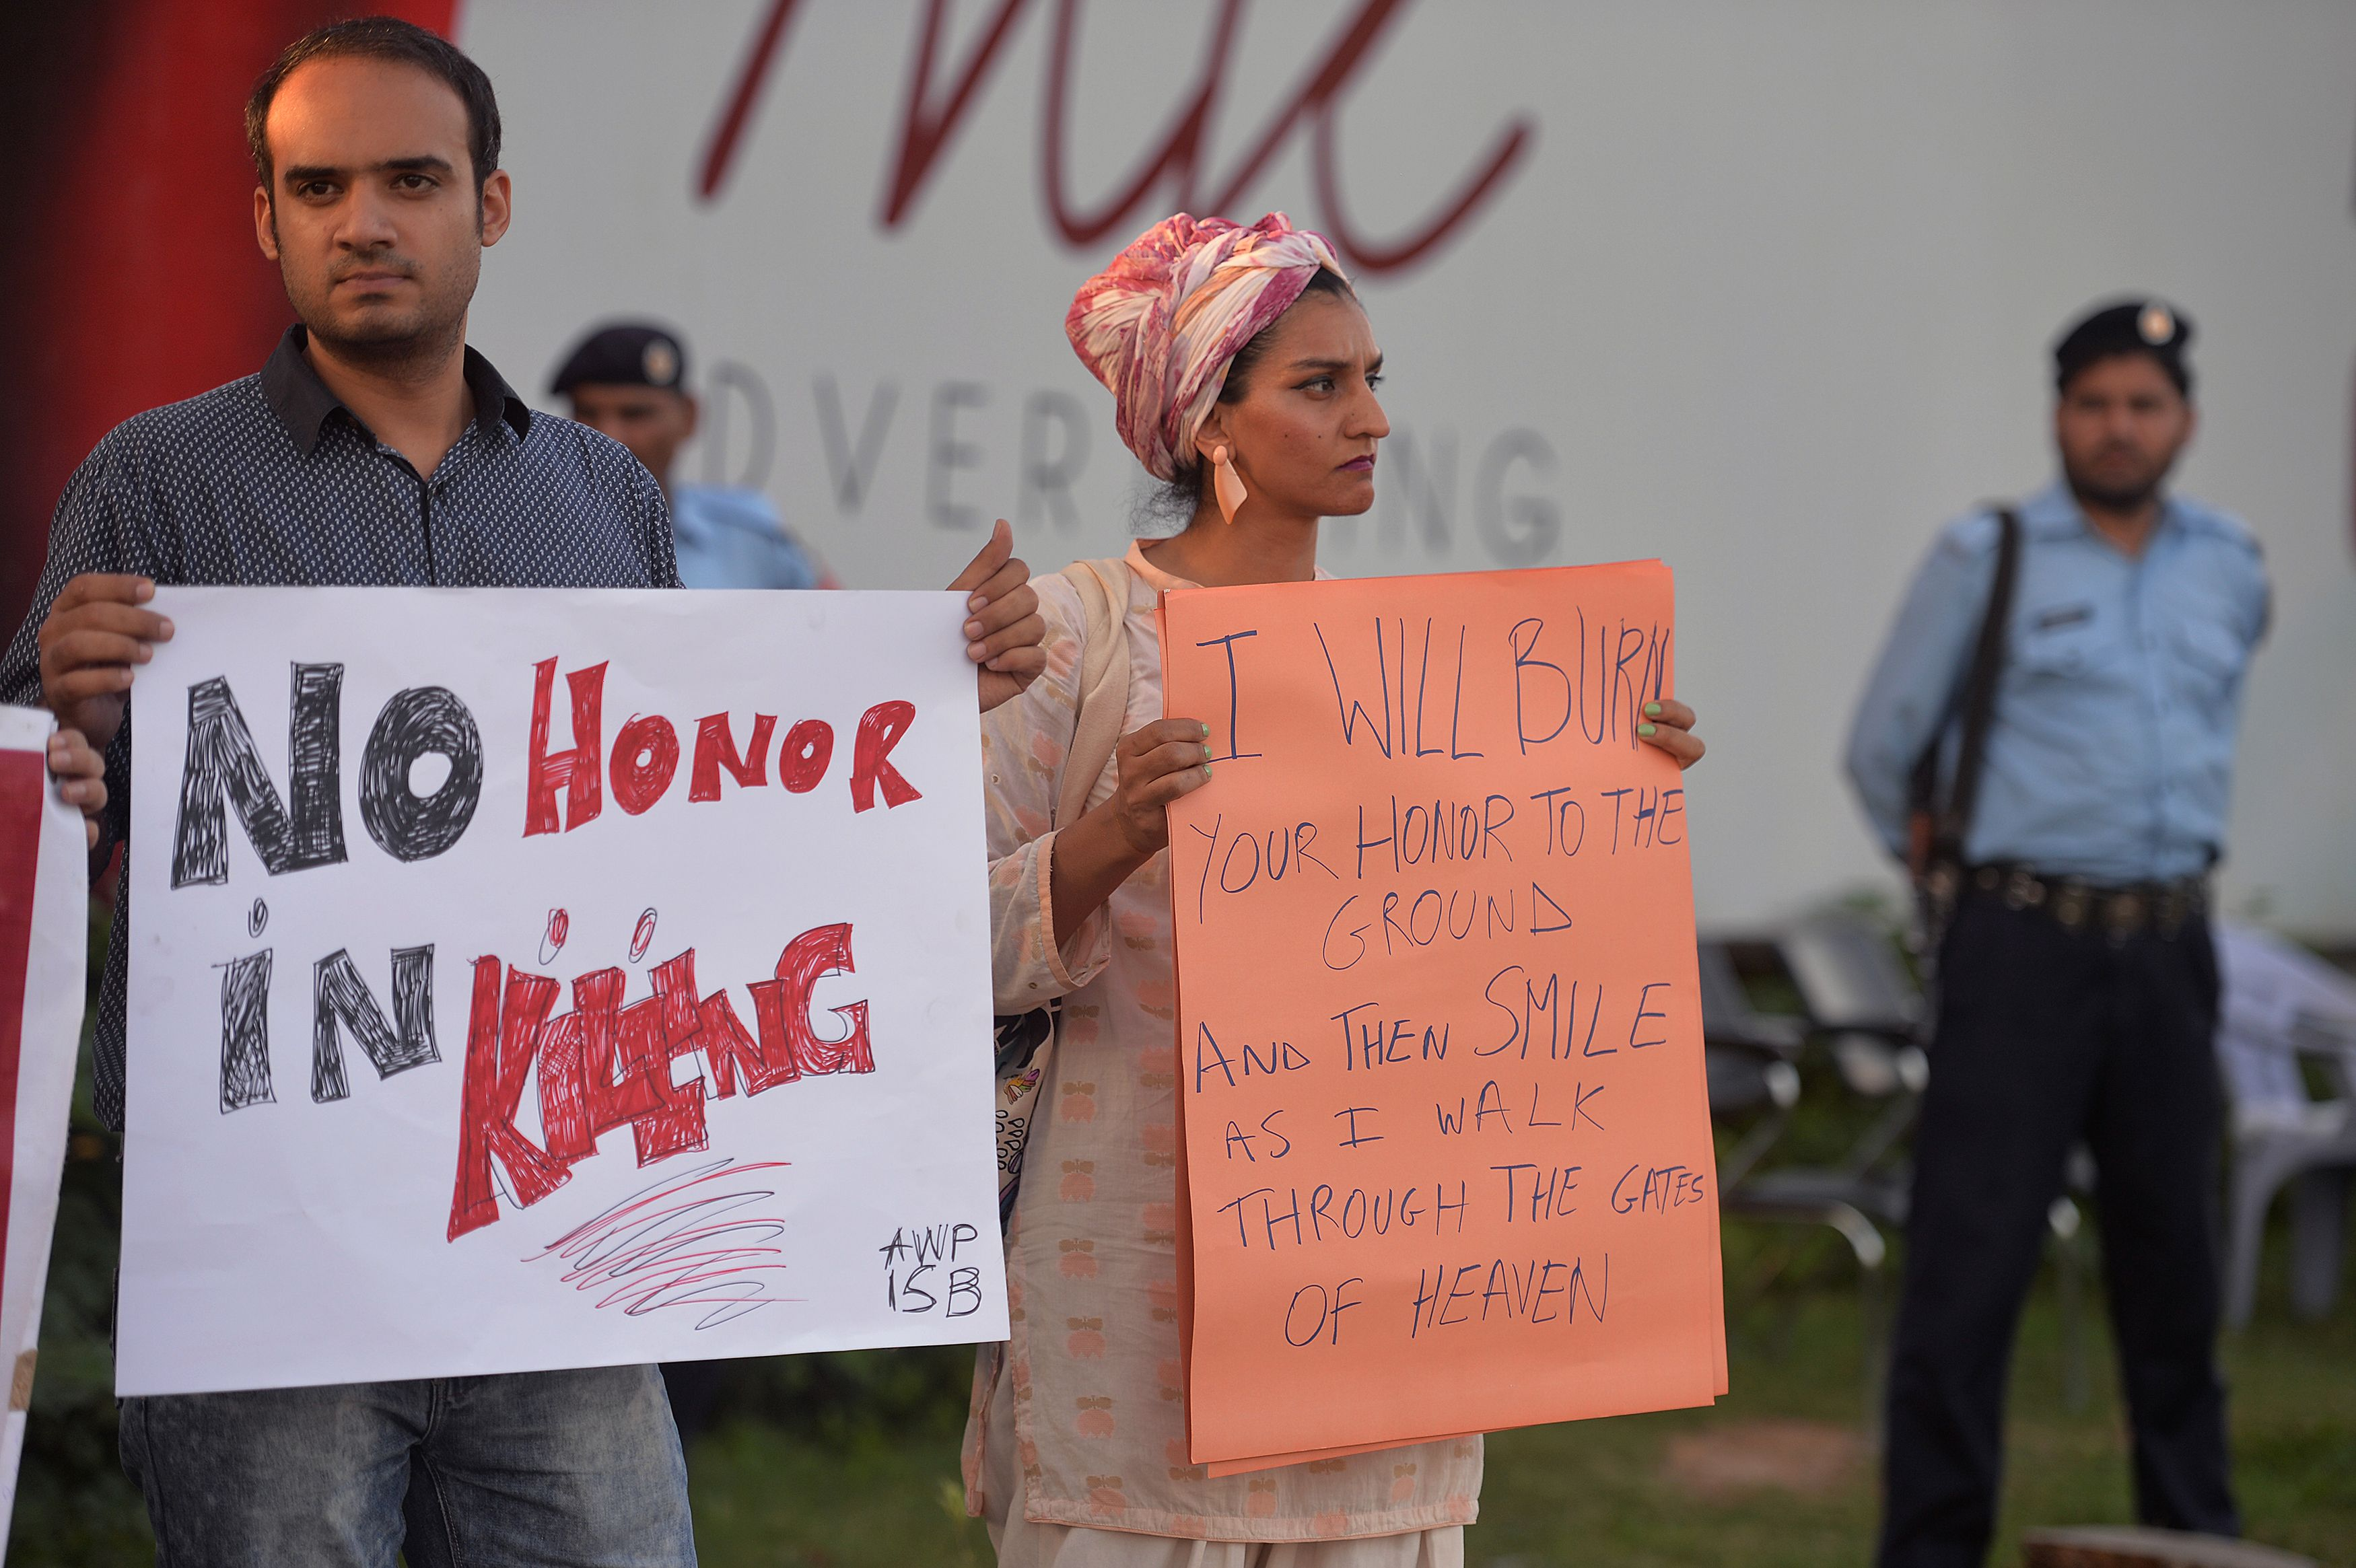 Pakistani civil-society activists carry placards during a protest in Islamabad on July 18, 2016, against the murder of social-media celebrity Qandeel Baloch by her own brother